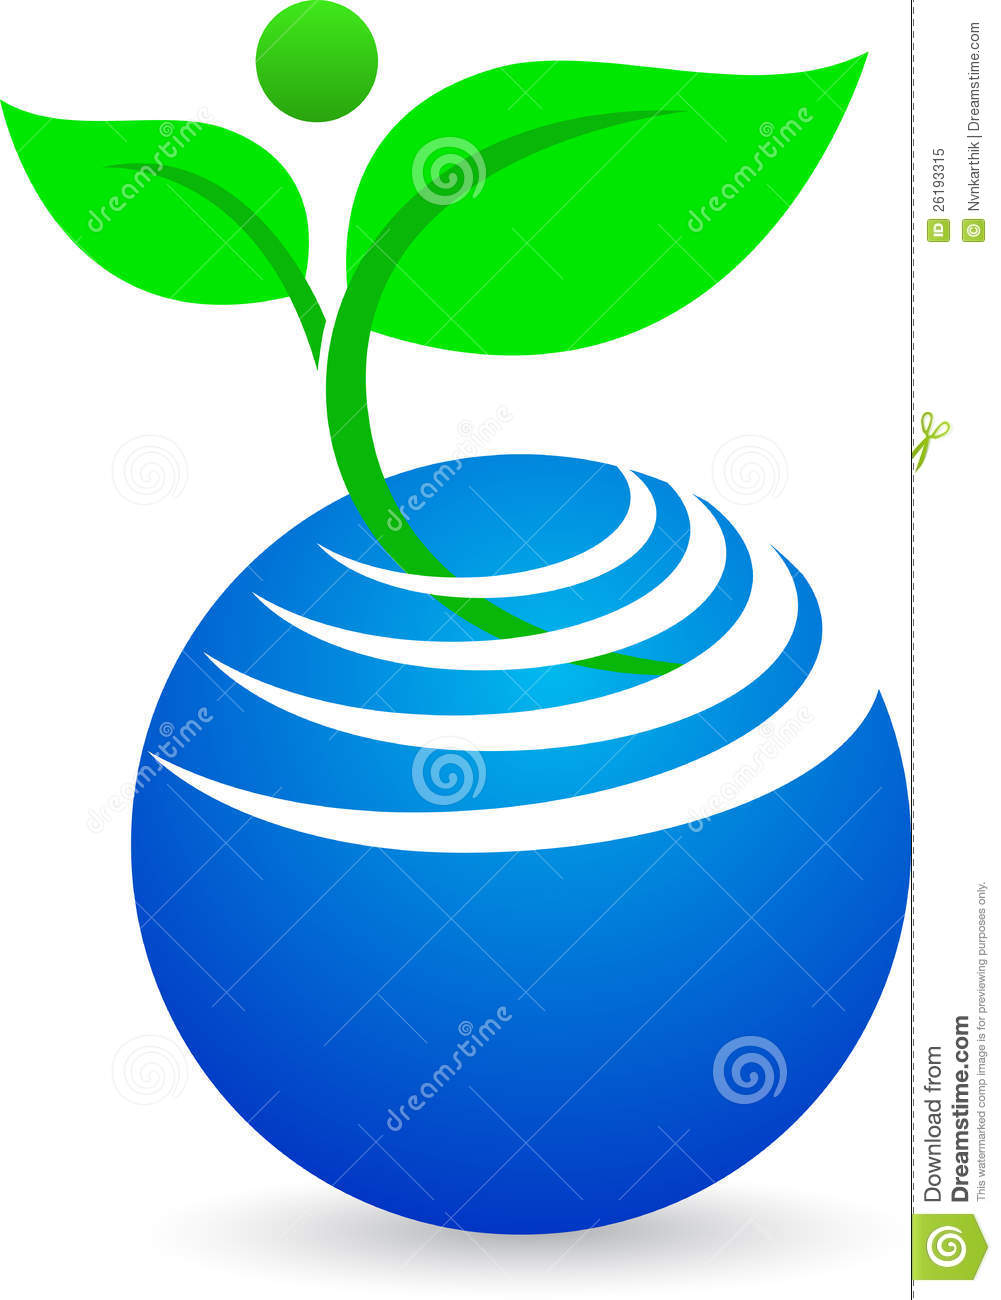 Download Abstract globe with plant stock vector. Illustration of garden - 26193315